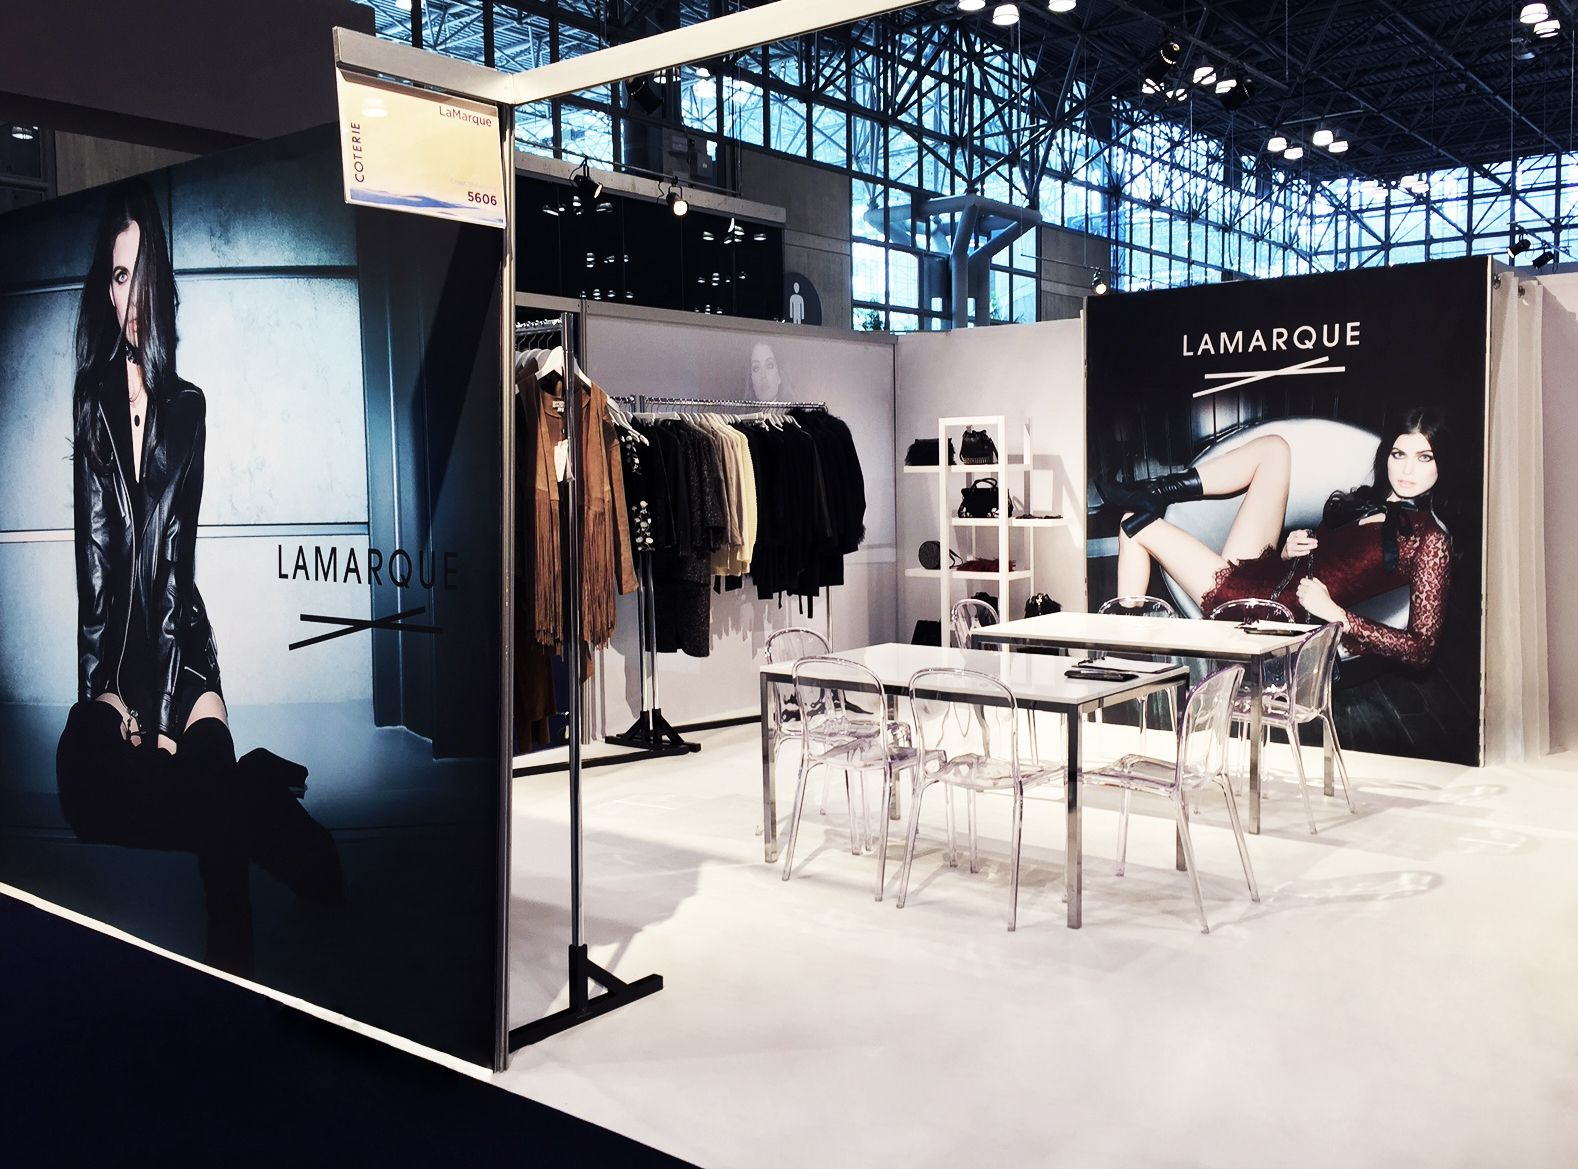 Exhibition Booth Concept : Spb concept booth design fashion coterie nyc our